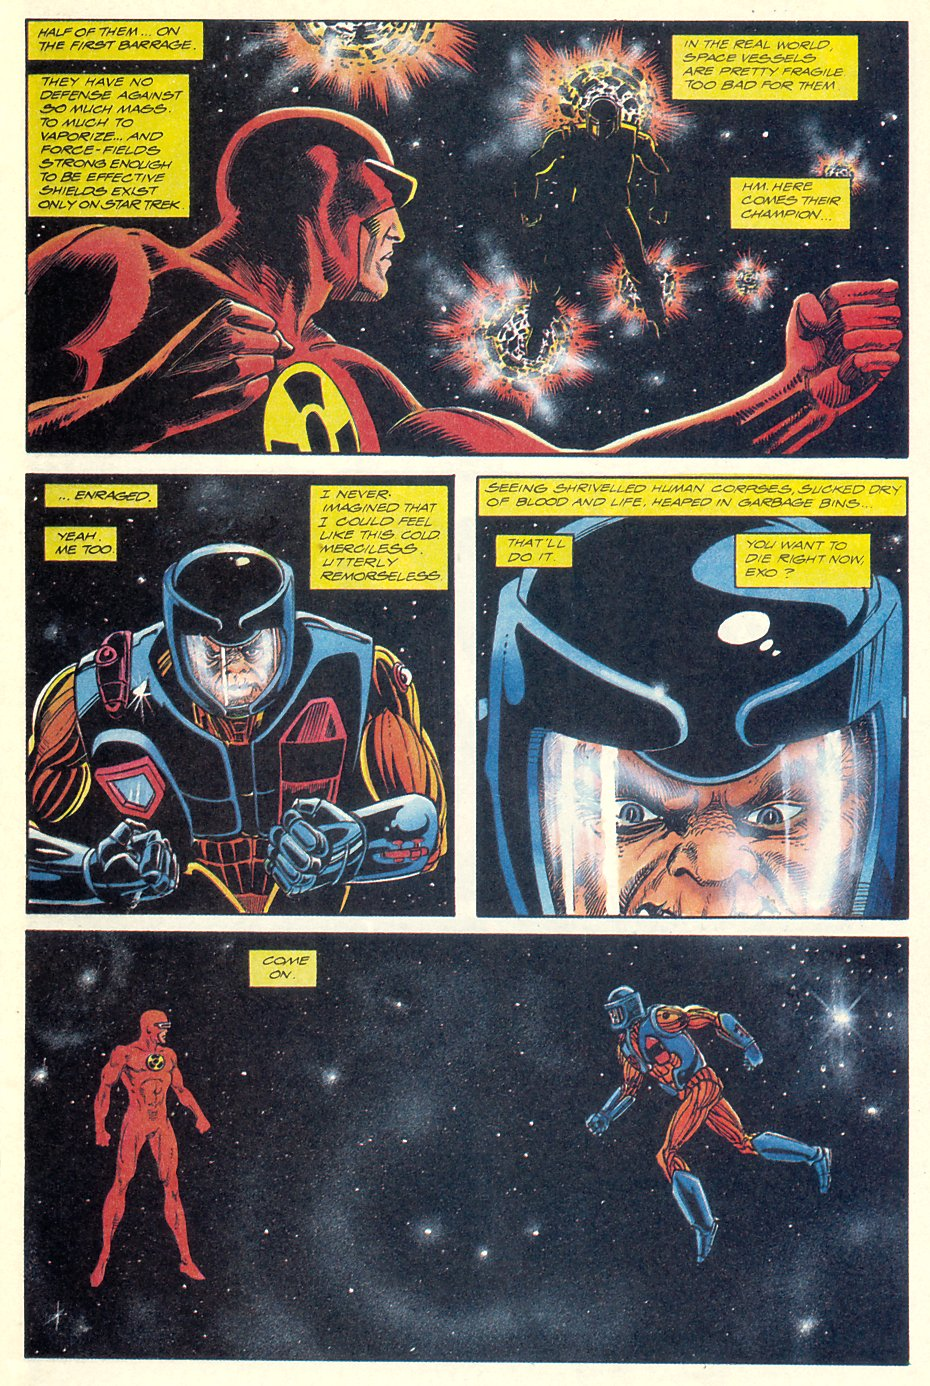 Read online Solar, Man of the Atom comic -  Issue #7 - 9